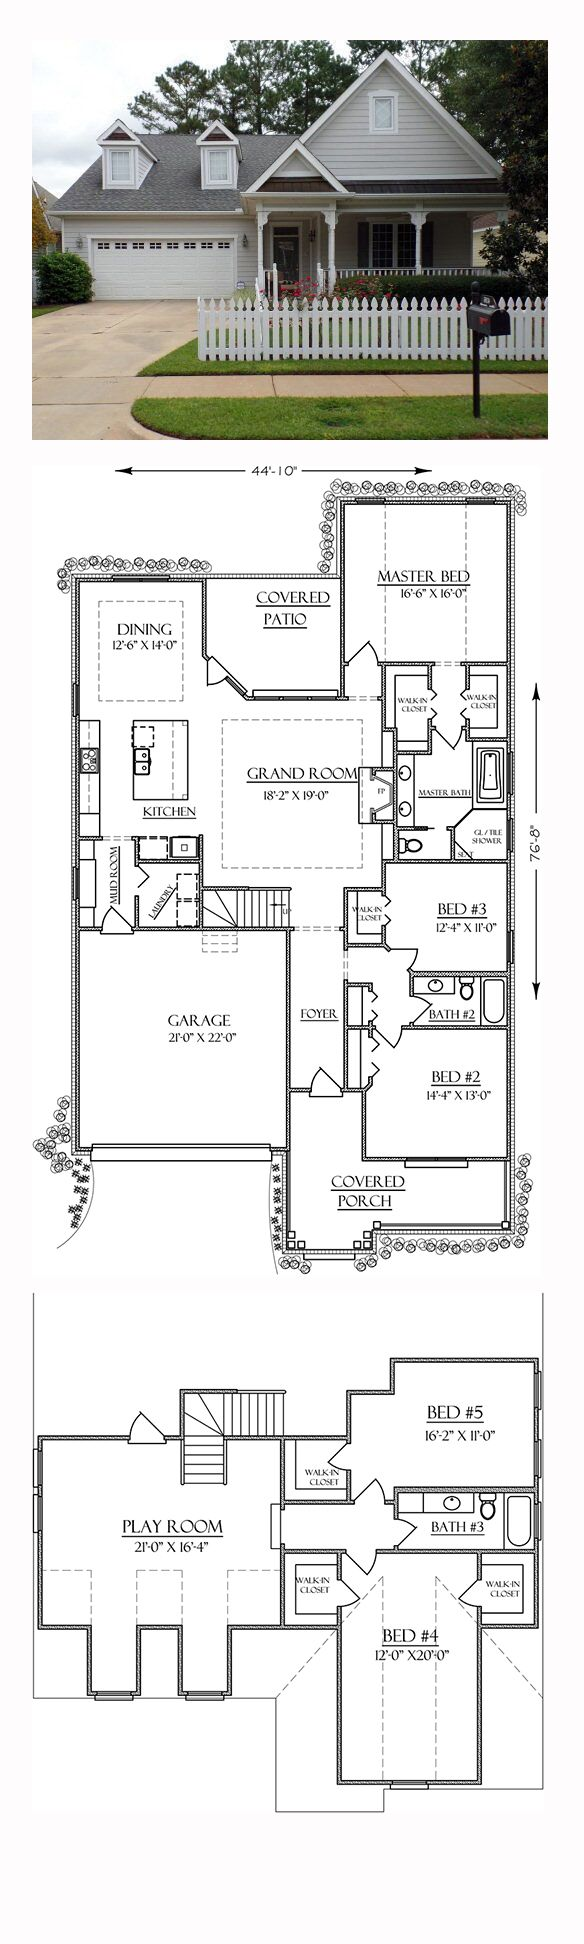 3 bedroom 2 bathroom house designs - New House Plan 74756 Total Living Area 3162 Sq 5 Bedrooms And 3 Bathrooms